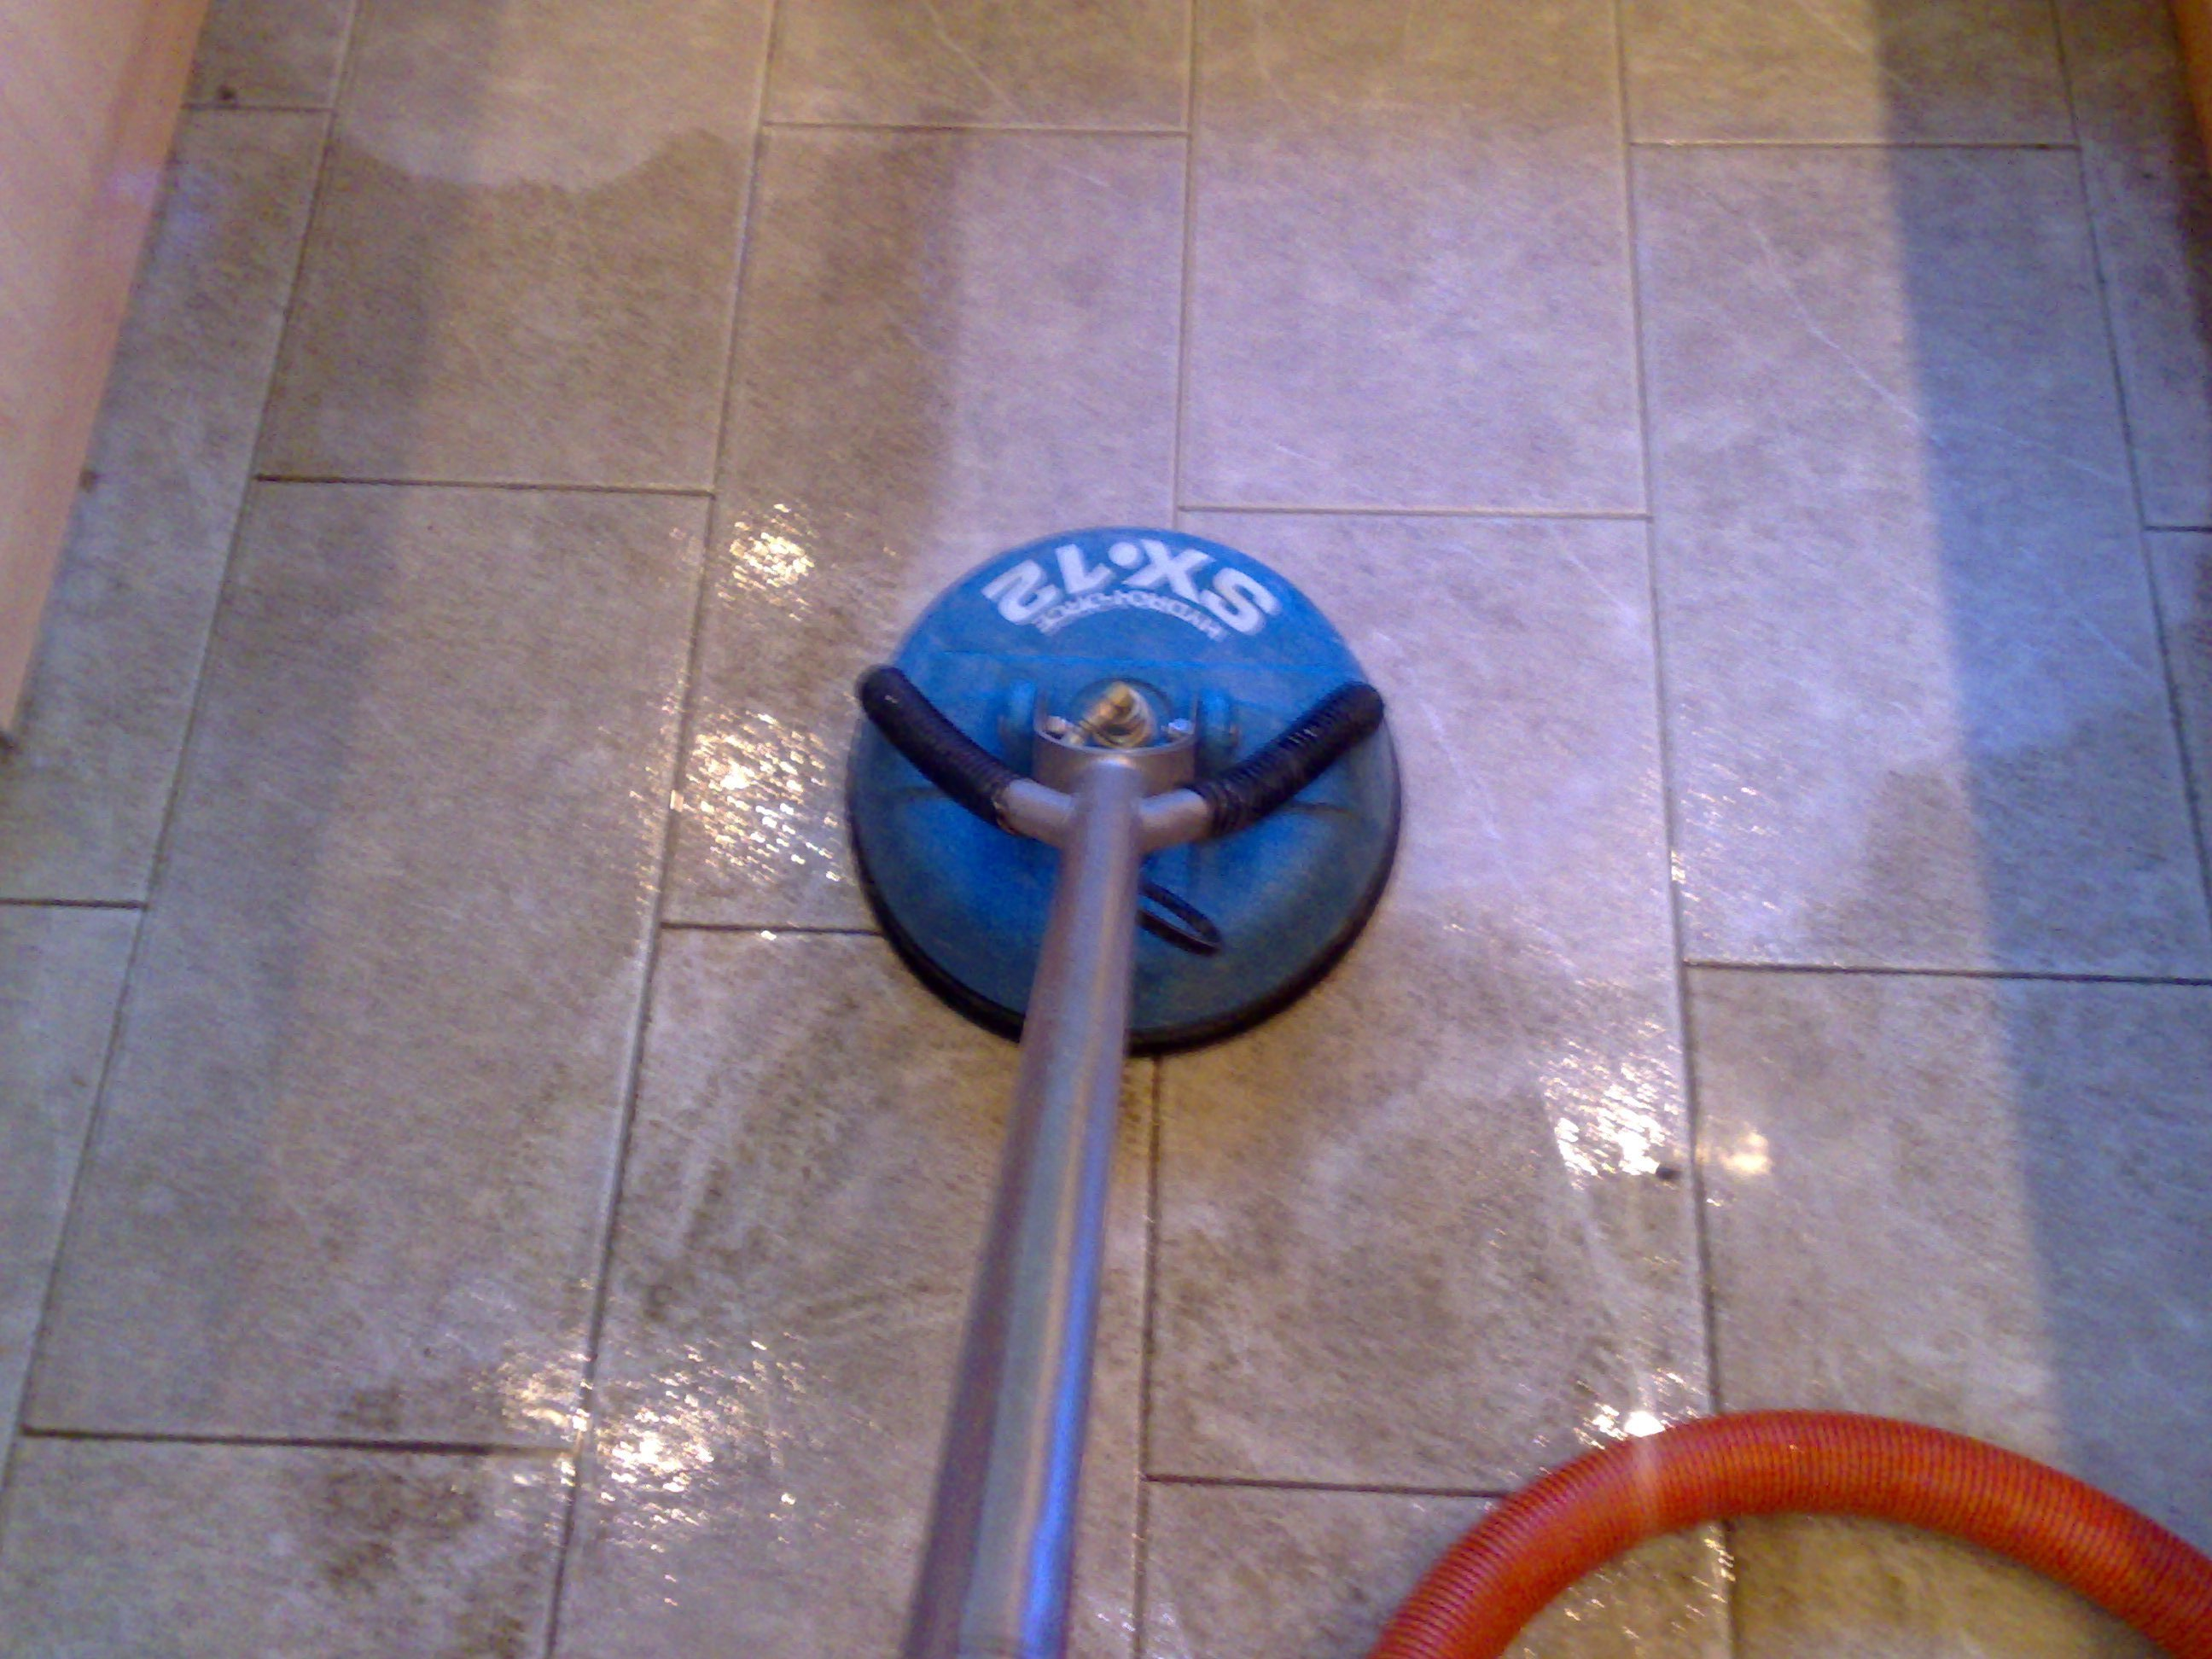 Tile and grout cleaning tile and grout cleaning in monks eleigh dailygadgetfo Choice Image